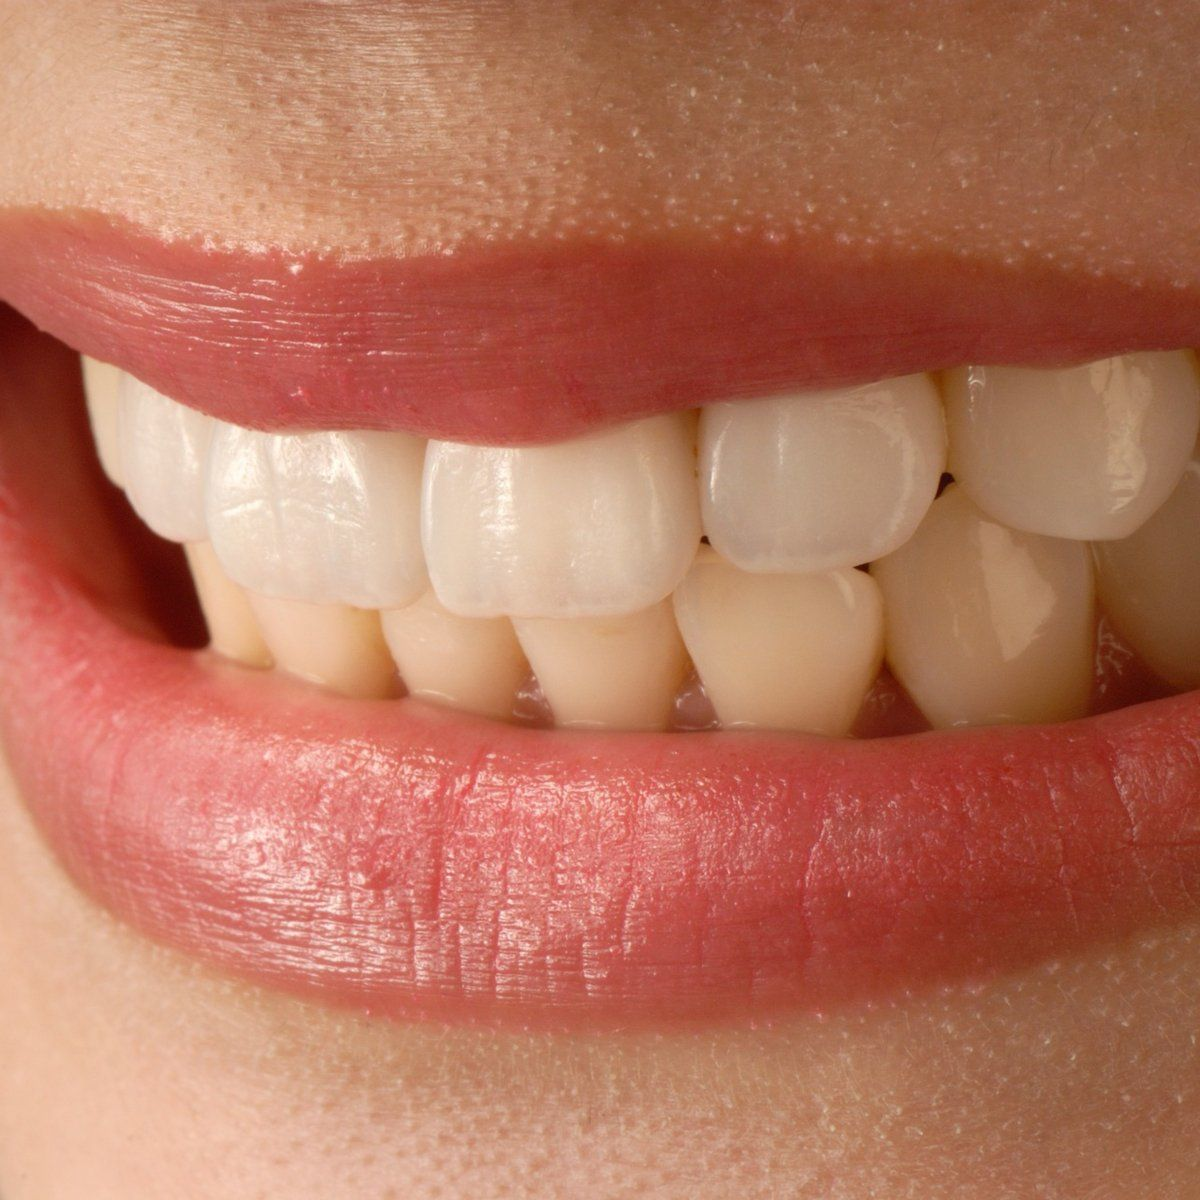 A veneer is a layer of material placed over a tooth which improves and protects the tooth's surface from damage. Two main types of veneer: composite and dental porcelain.  #dentistottawa #dentistorleans #dentist #dentistebilingue #dentalclinic #familyservice #veneers #dentalfacts